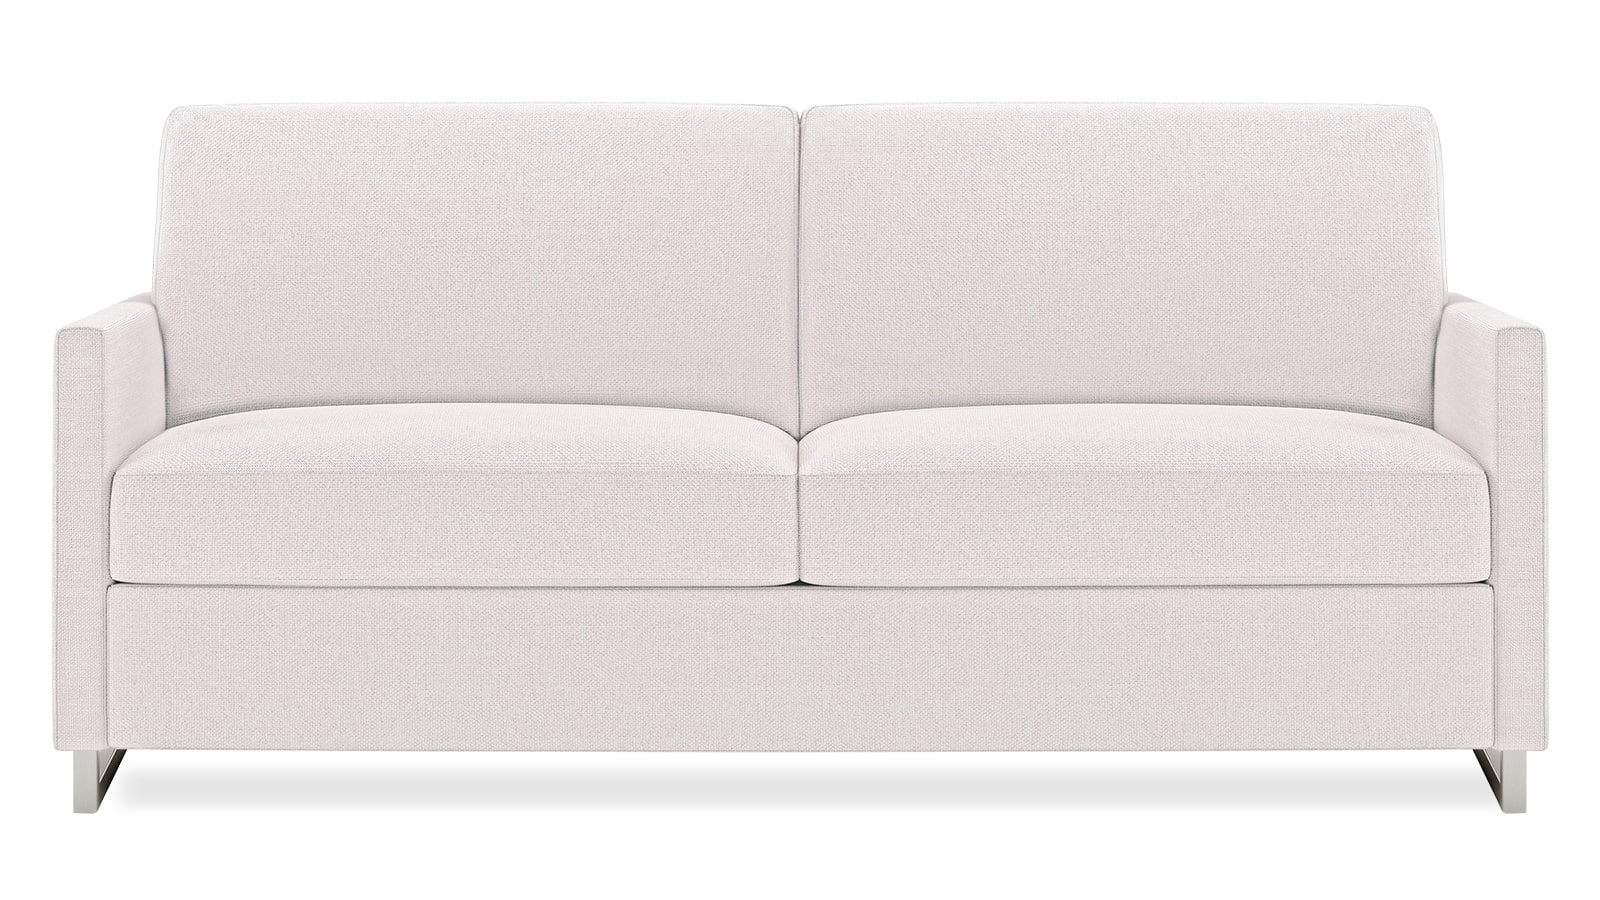 american leather brandt sleeper sofa